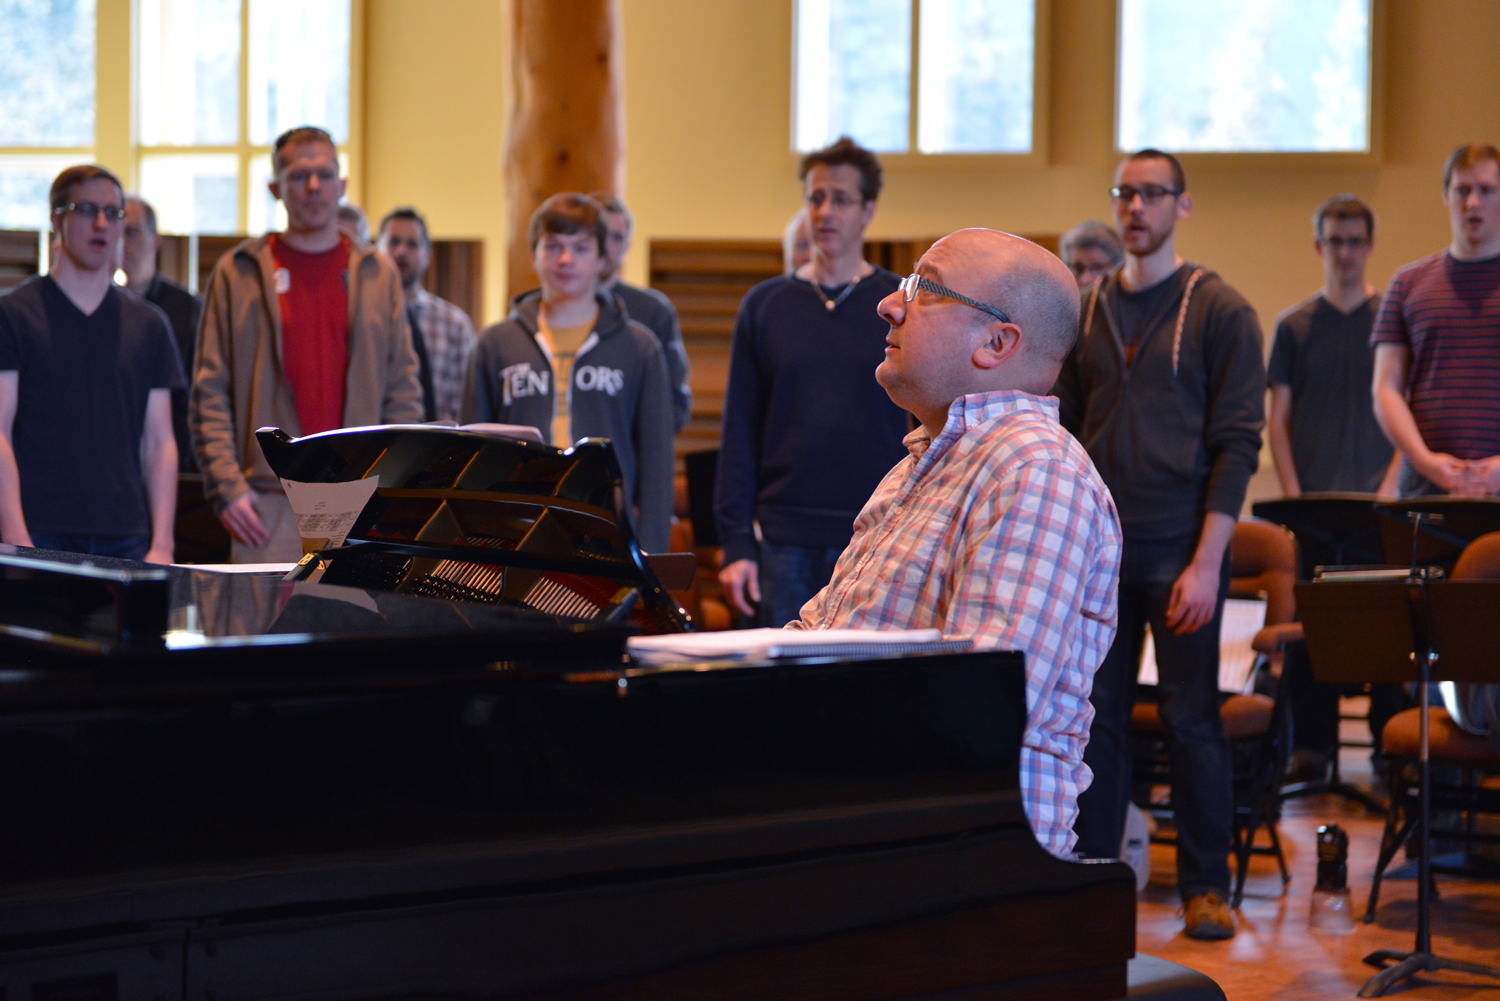 Spiritus warms up for a grueling day of rehearsal, polishing pieces for their upcoming recordings and learning new music for their upcoming concert,  Ice and Fire  where they will be premiering a new work by composer Carmen Braden.